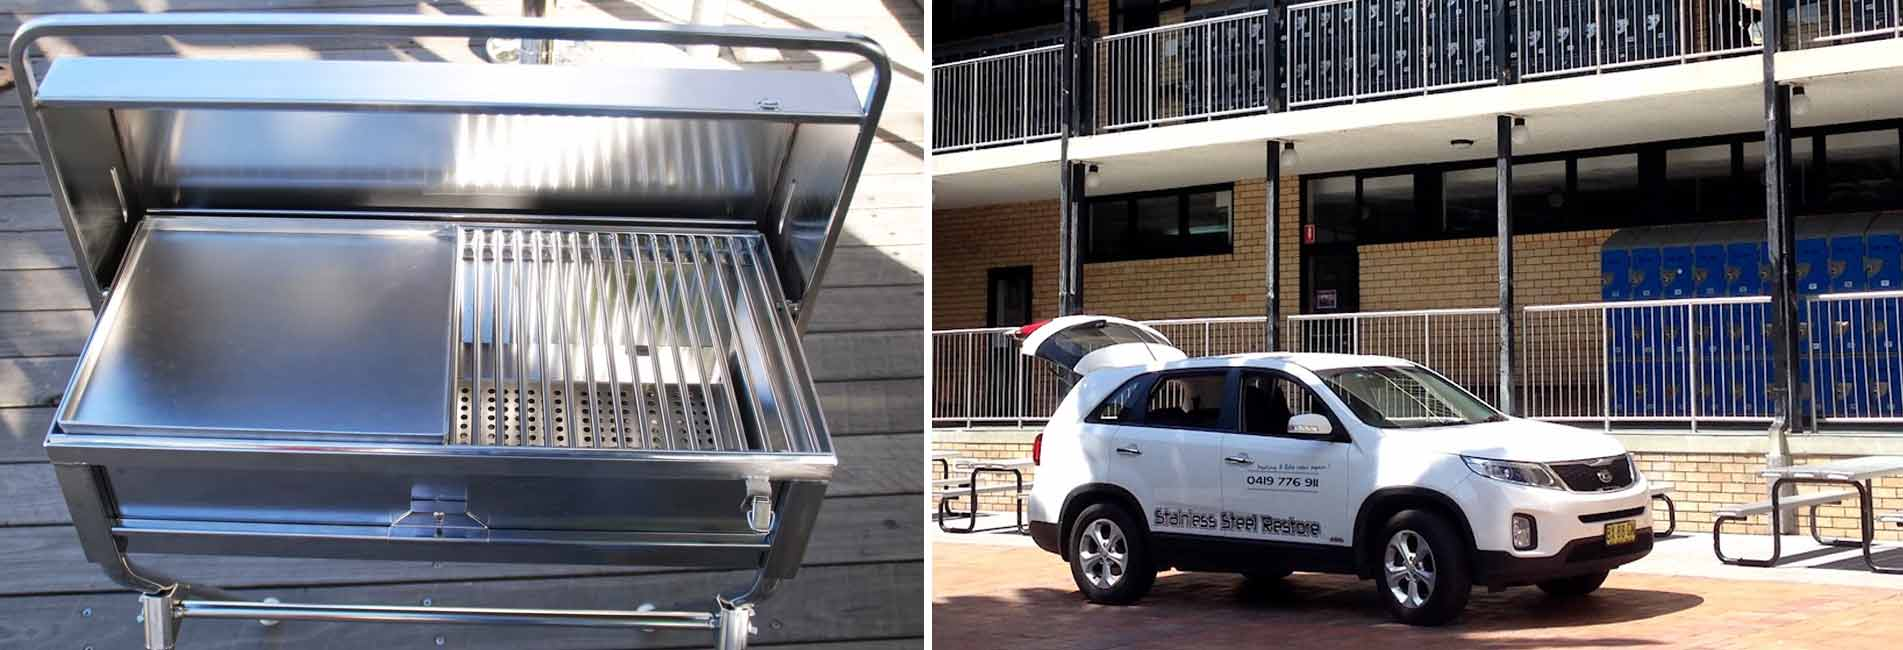 Stainless Steel Scratches Northern Beaches, Stainless Steel Cleaning Gosford, Stainless Steel Polishing Terrigal